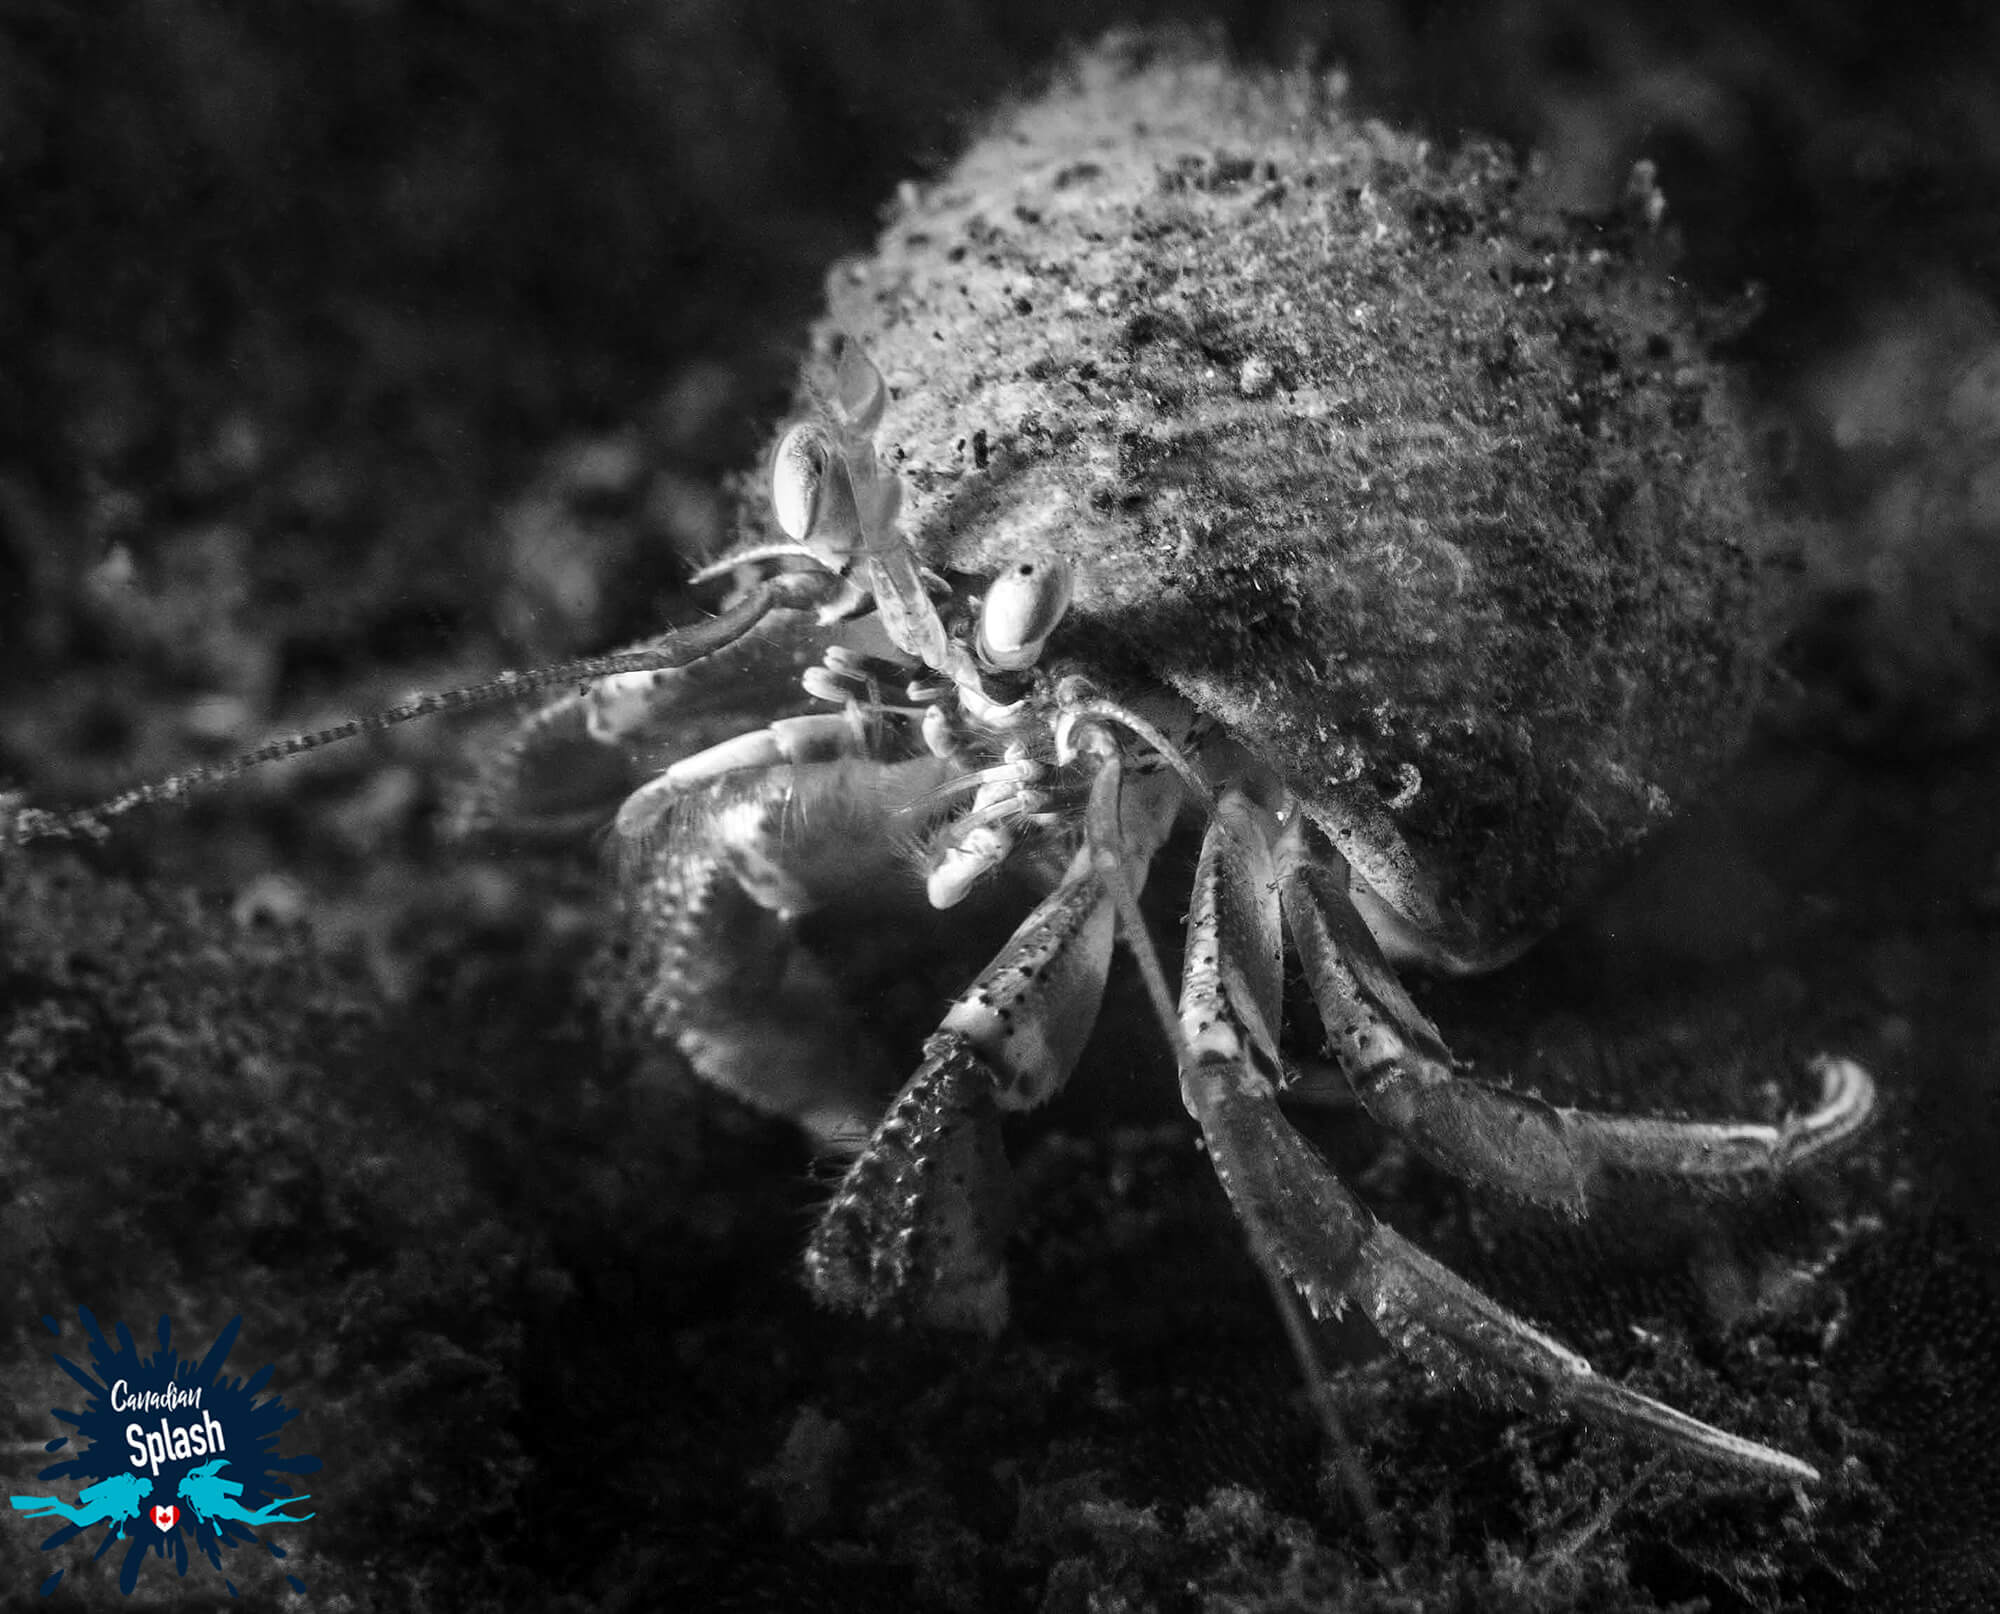 Black And White Hermit Crab On The Sea Floor Of Saint Andrews, New Brunswick, Canadian Splash